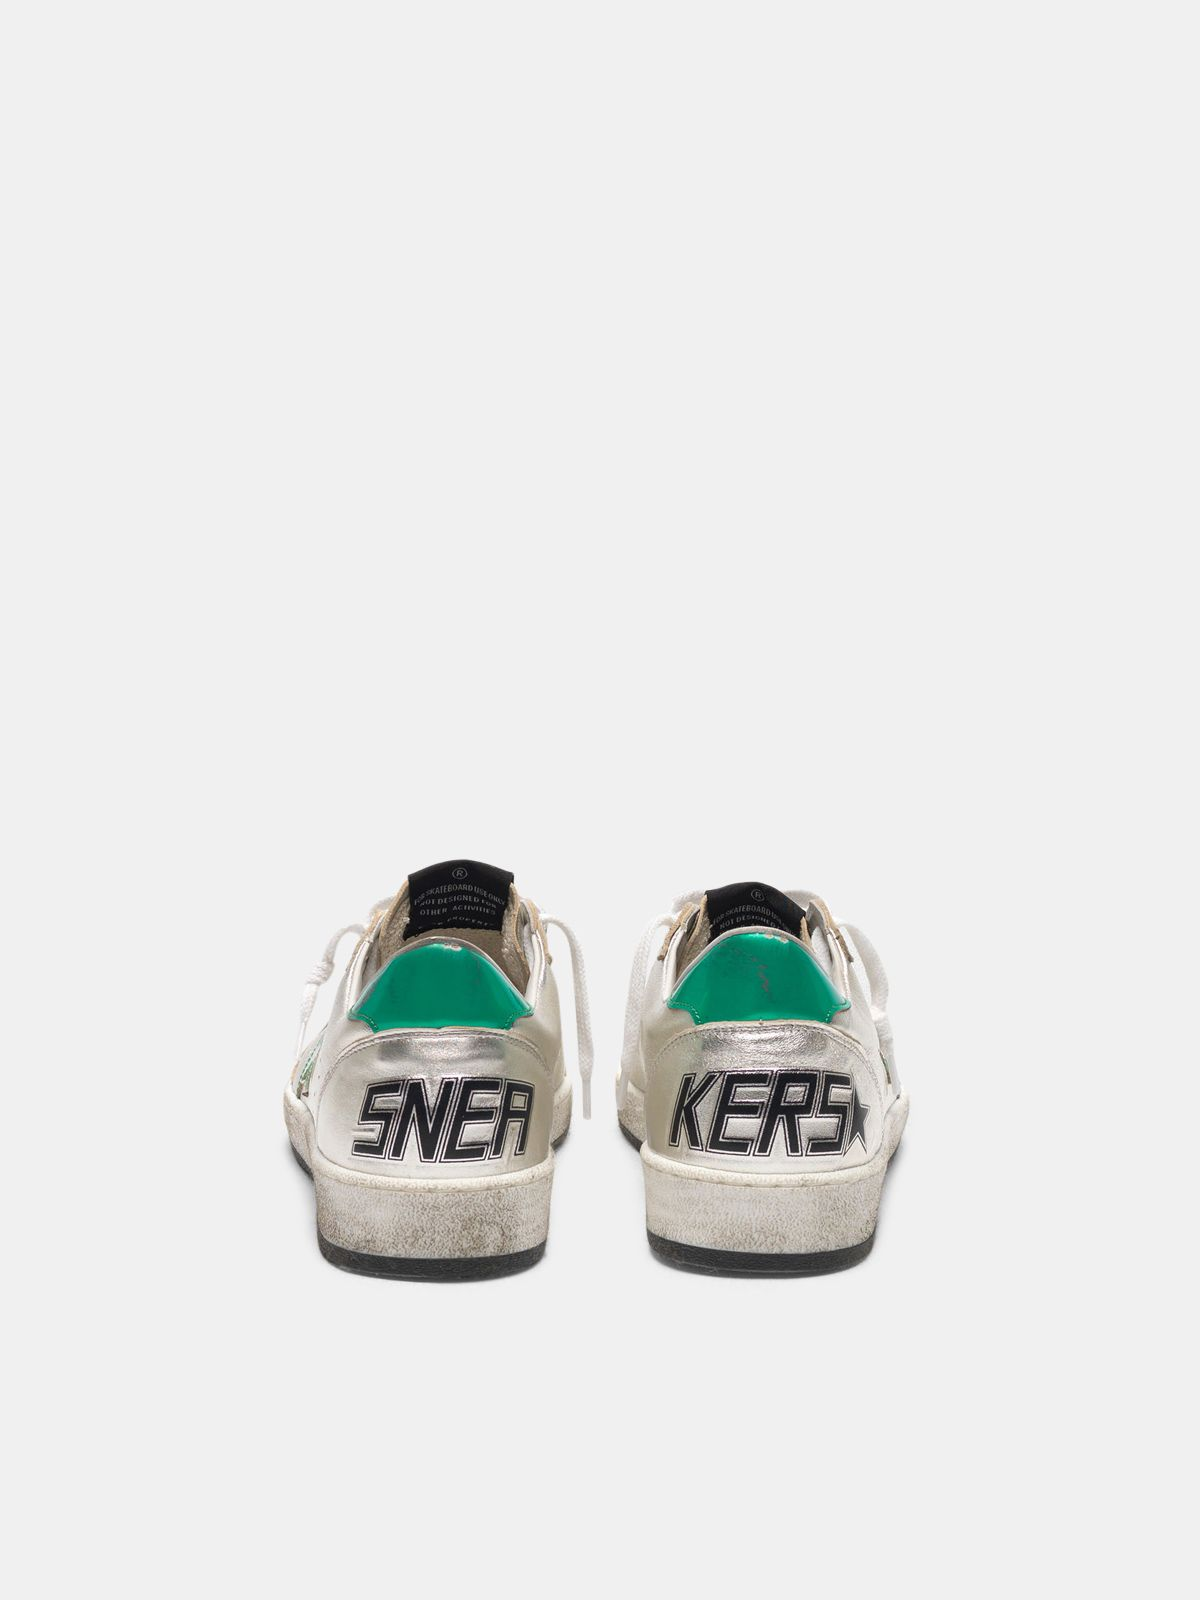 Golden Goose - Silver Ball Star sneakers with green star and heel tab in